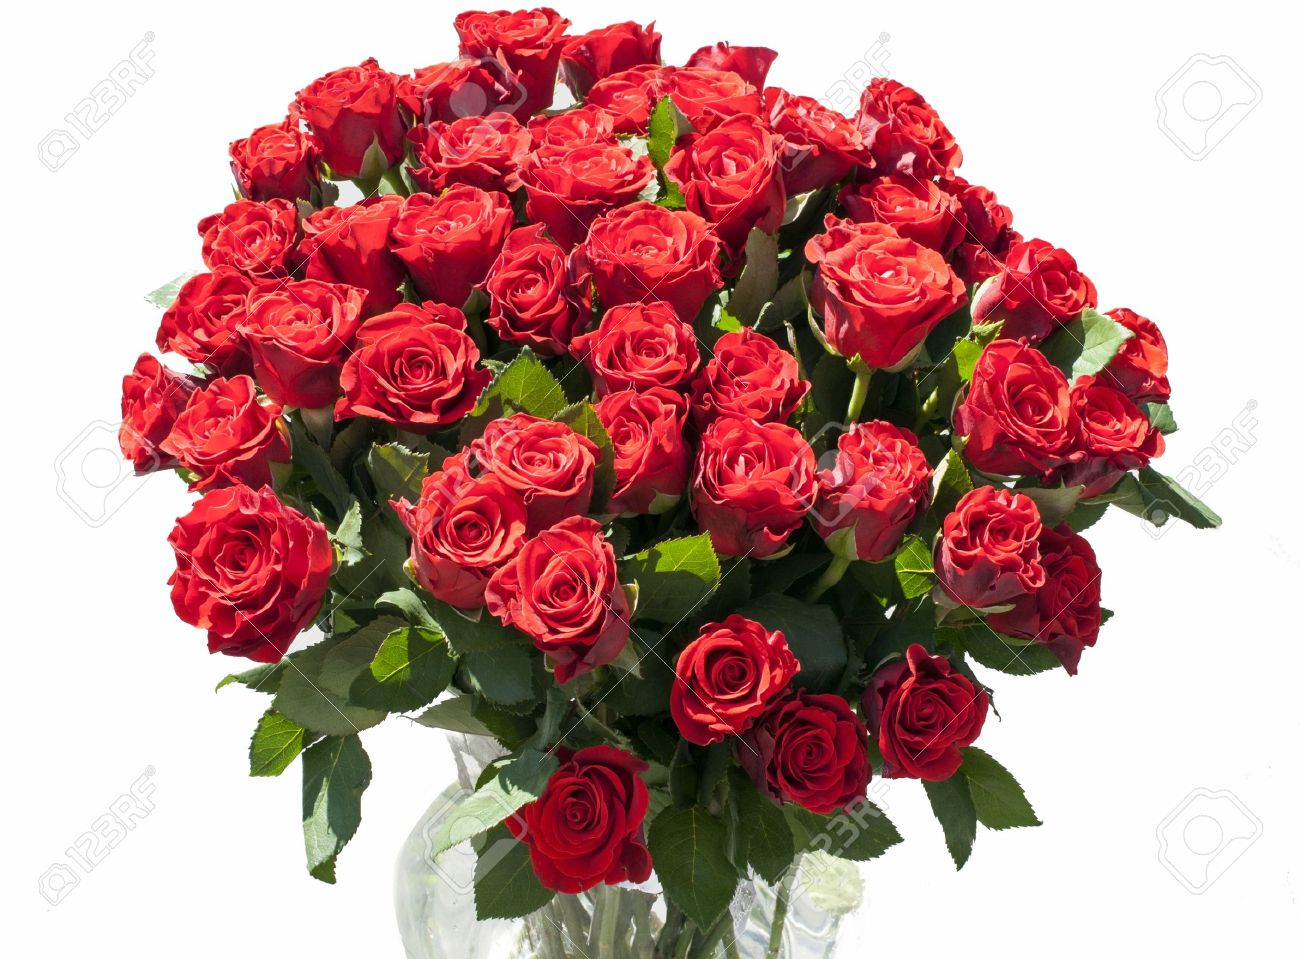 vase with red roses with sunlight on the flowers Stock Photo - 14665770